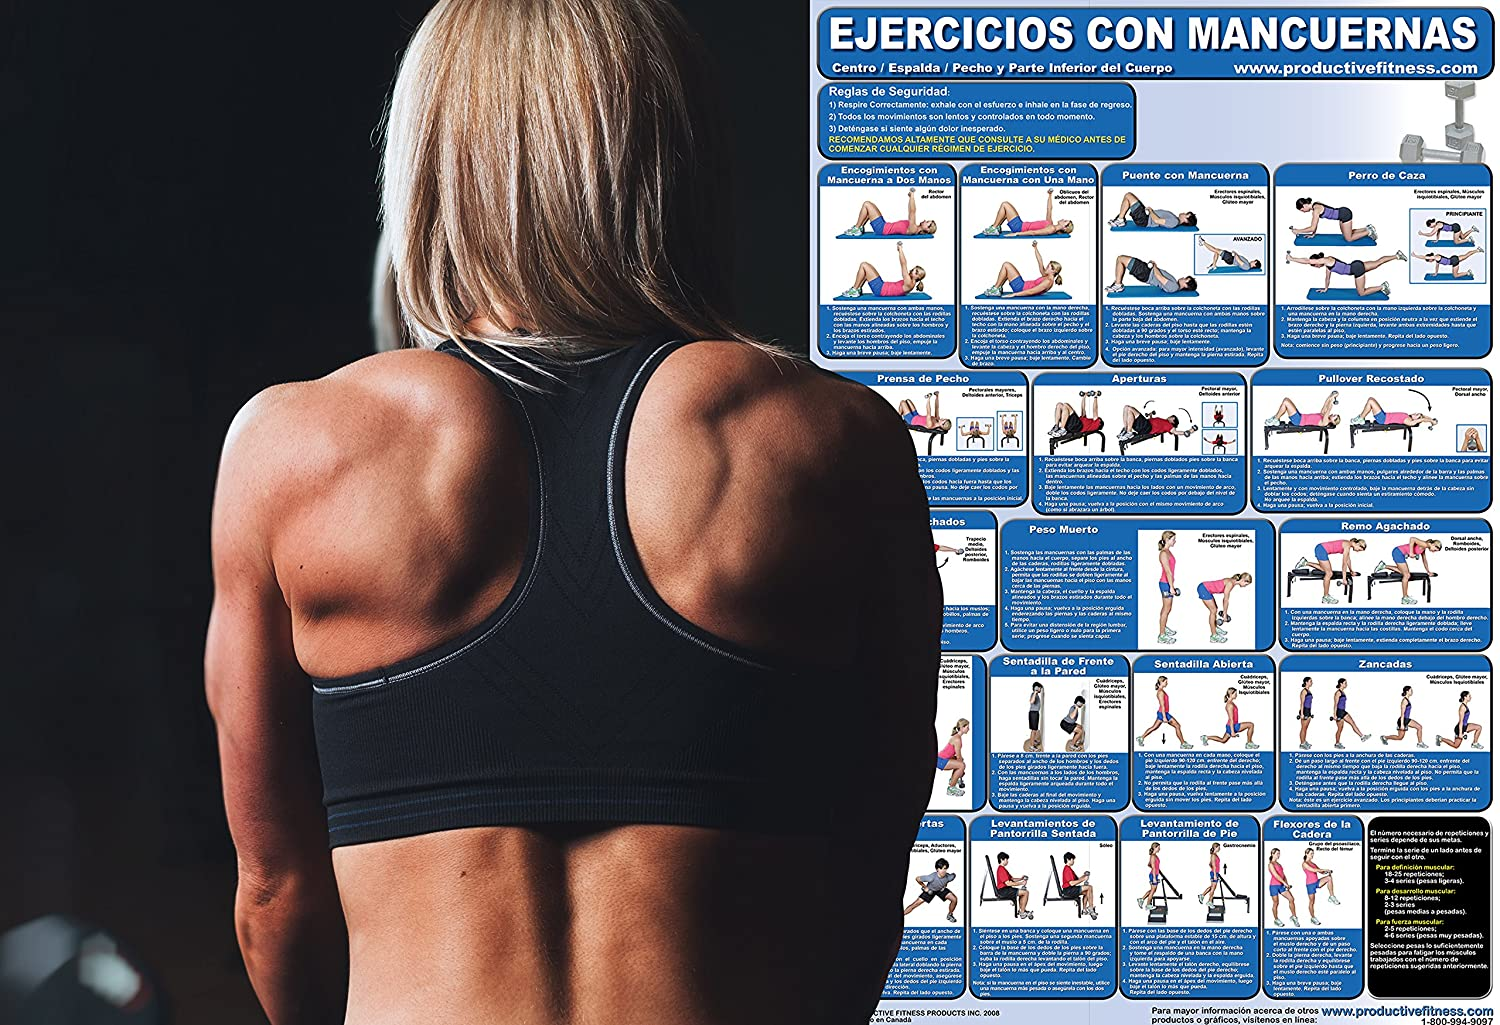 Amazon.com : Ejercicios con Mancuernas - Centro/Espalda/pecho y parte inferior del Cuerpo - Cartel - Dumbbell Exercises-Lower Body/Core/Chest and Back ...